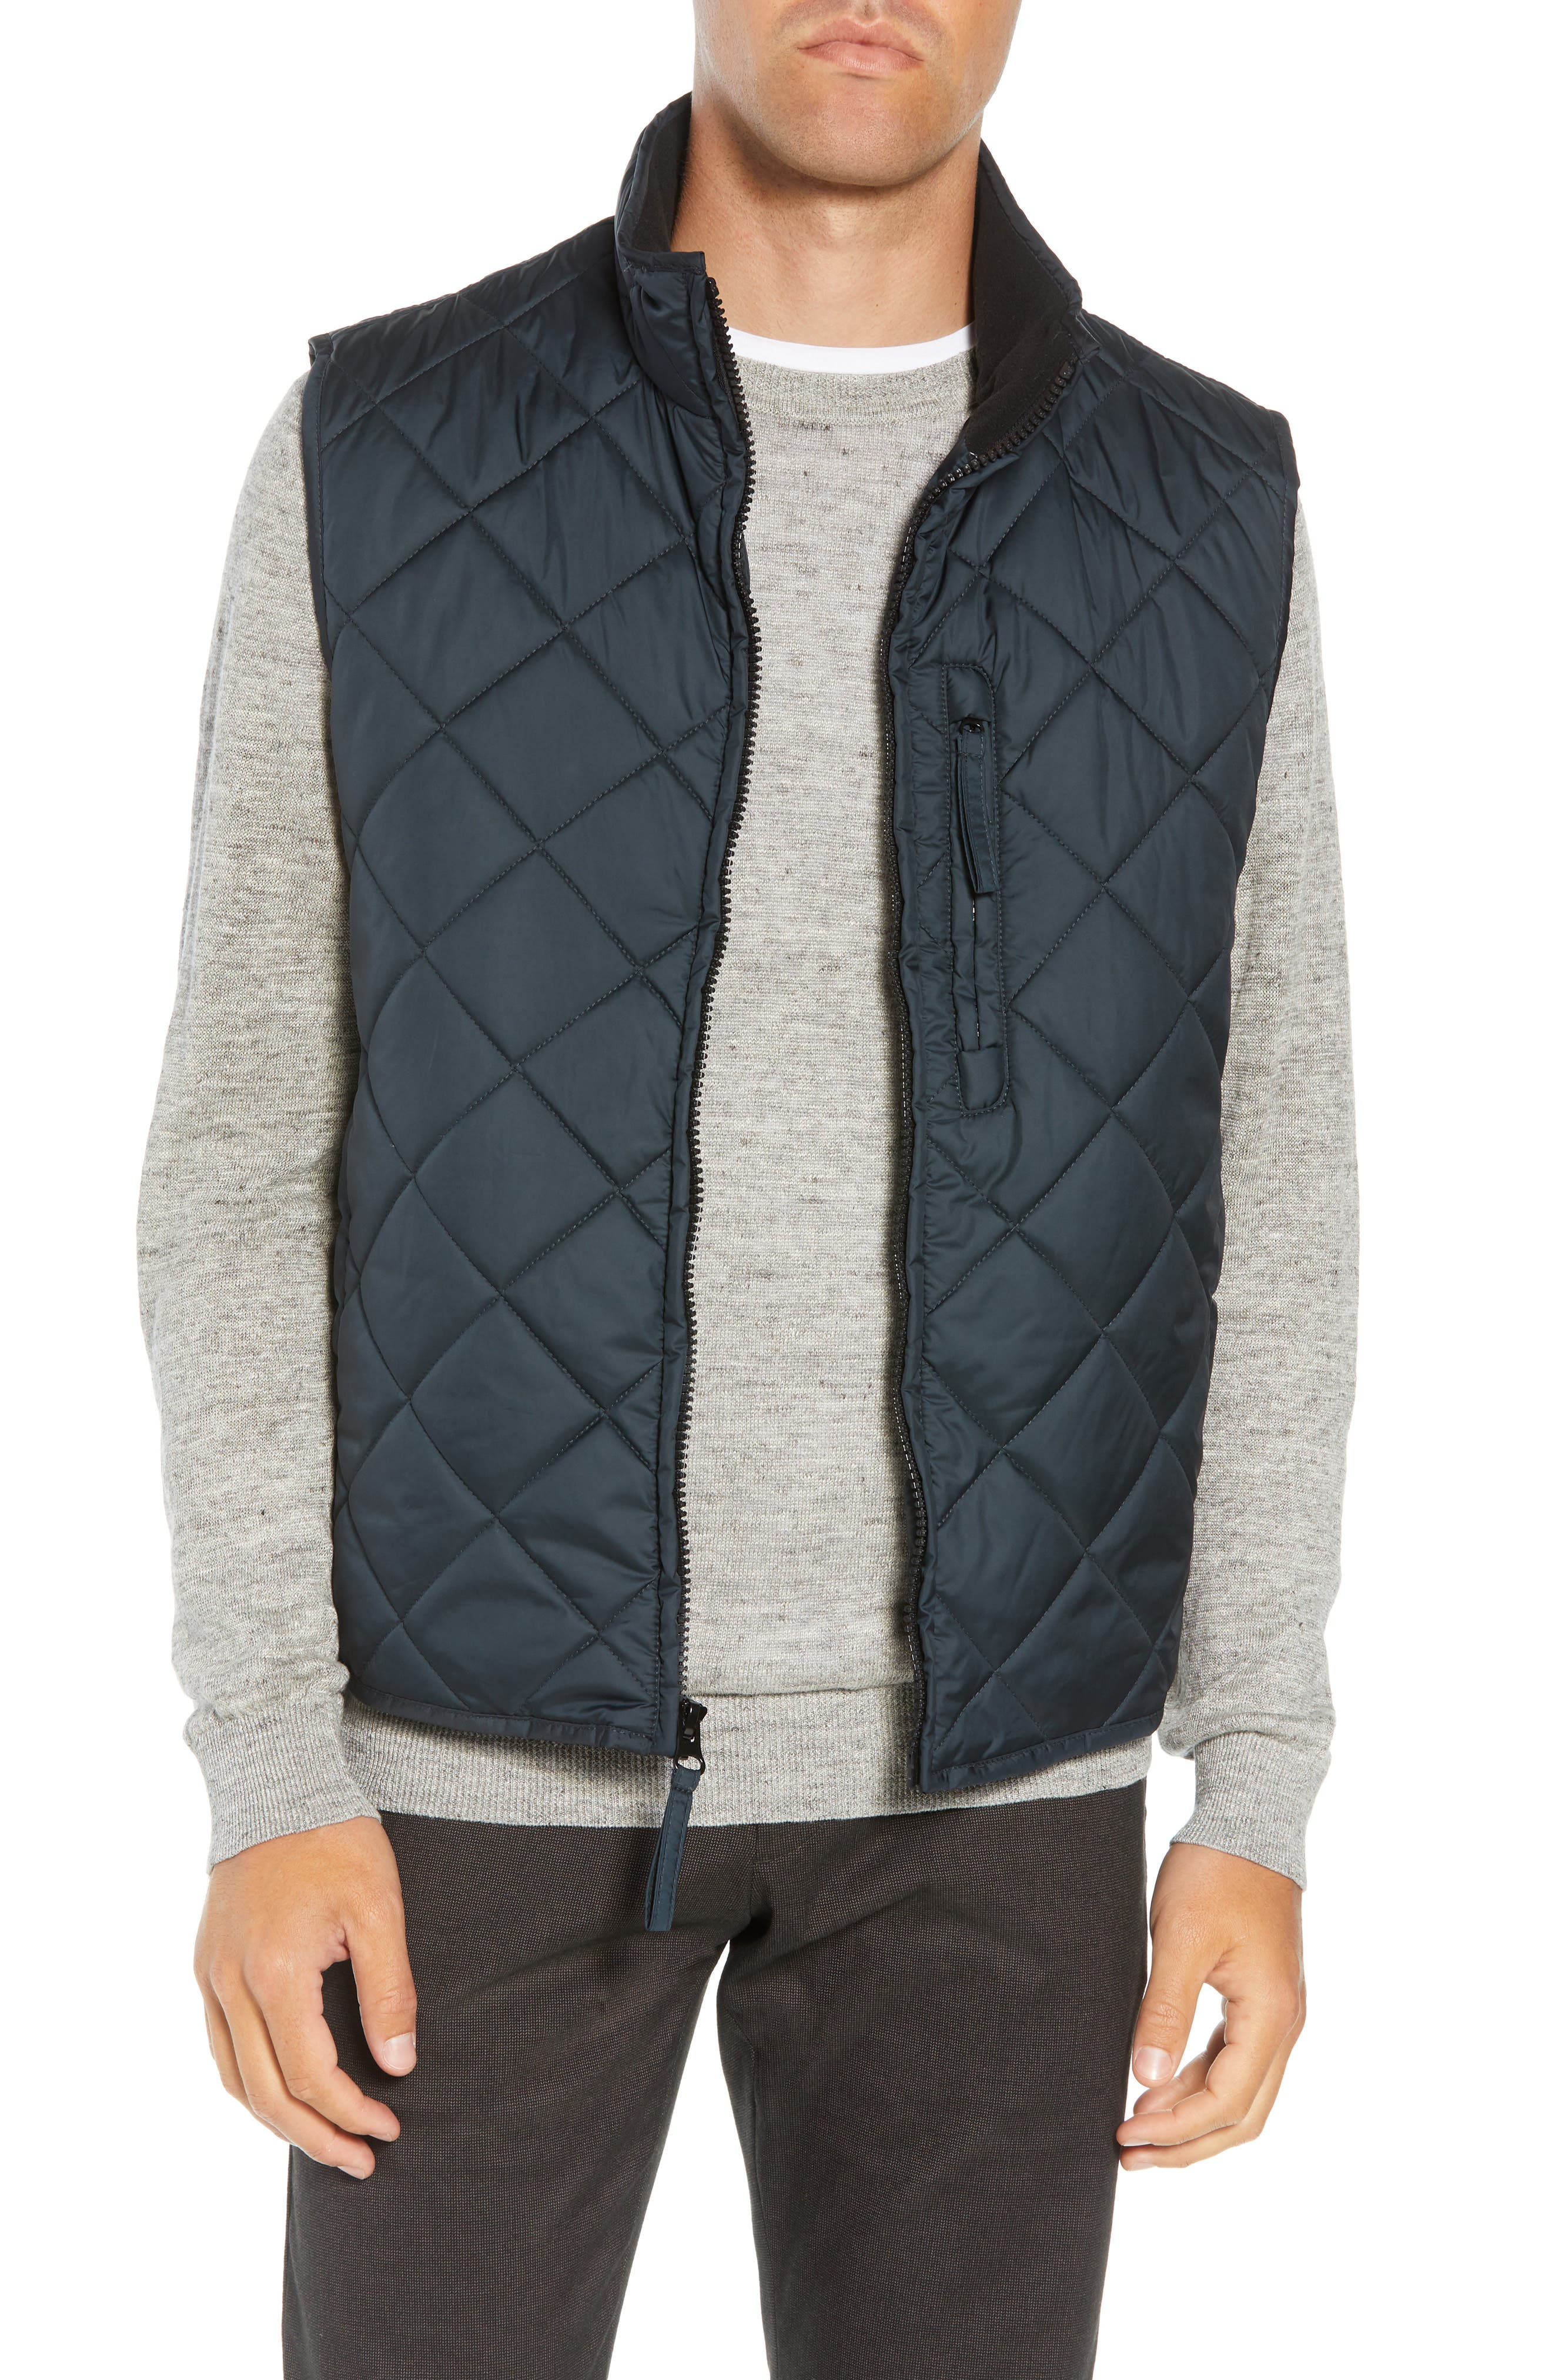 MARC NEW YORK, Chester Packable Quilted Vest, Main thumbnail 1, color, BLACK